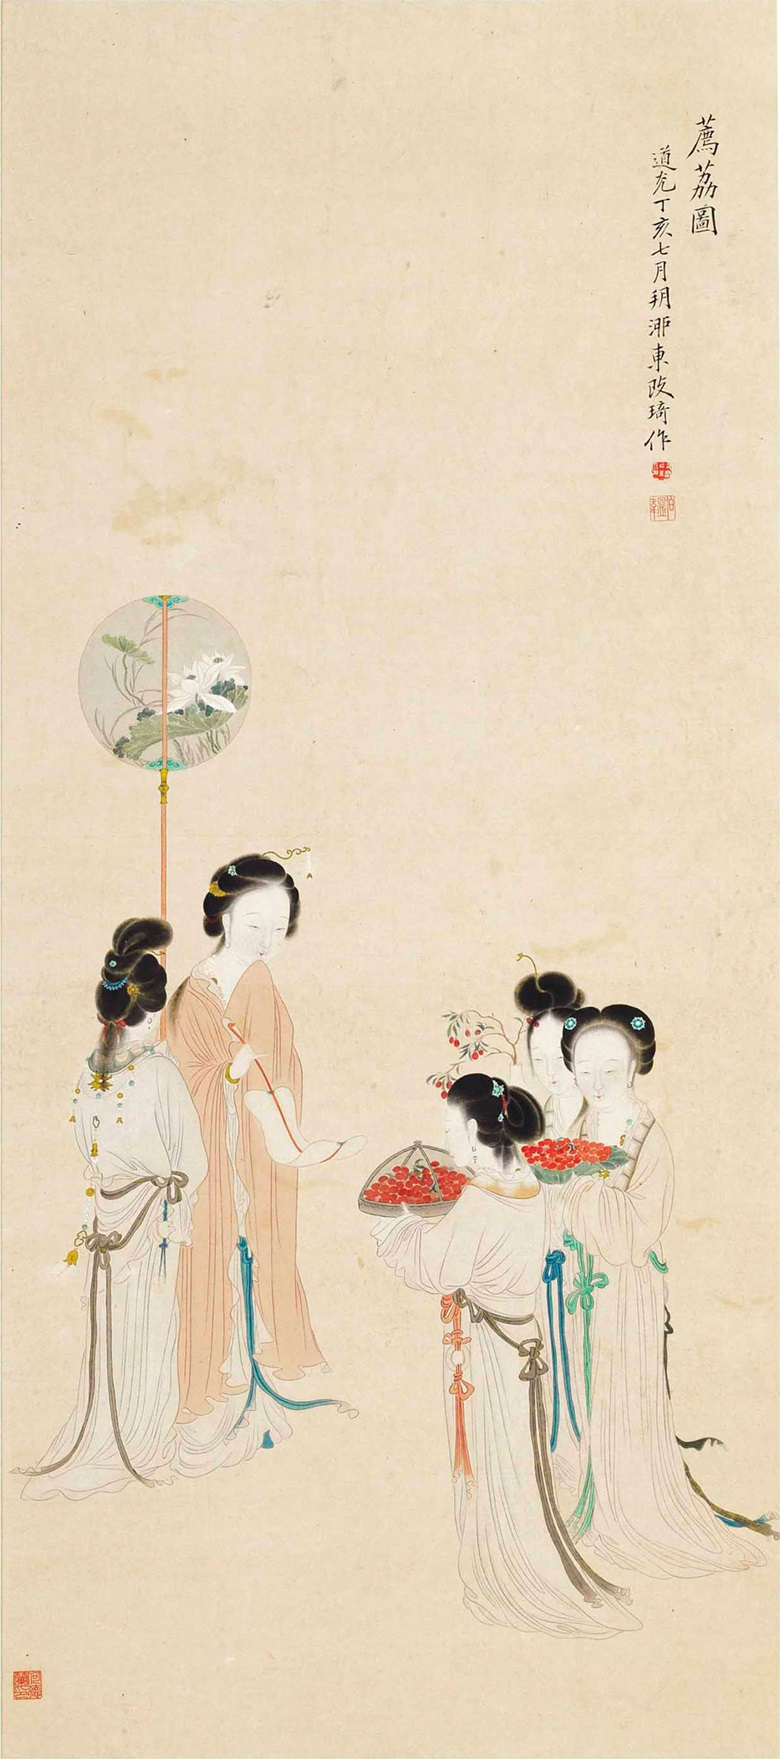 Gai Qi (1773-1828), Offering Lychees, 1827. 42¼ x 18⅝  in (107.2 x 47.3  cm). Estimate $9,000-18,000. This lot is offered in Fine Chinese Paintings on 12 September 2017  at Christie's in New York